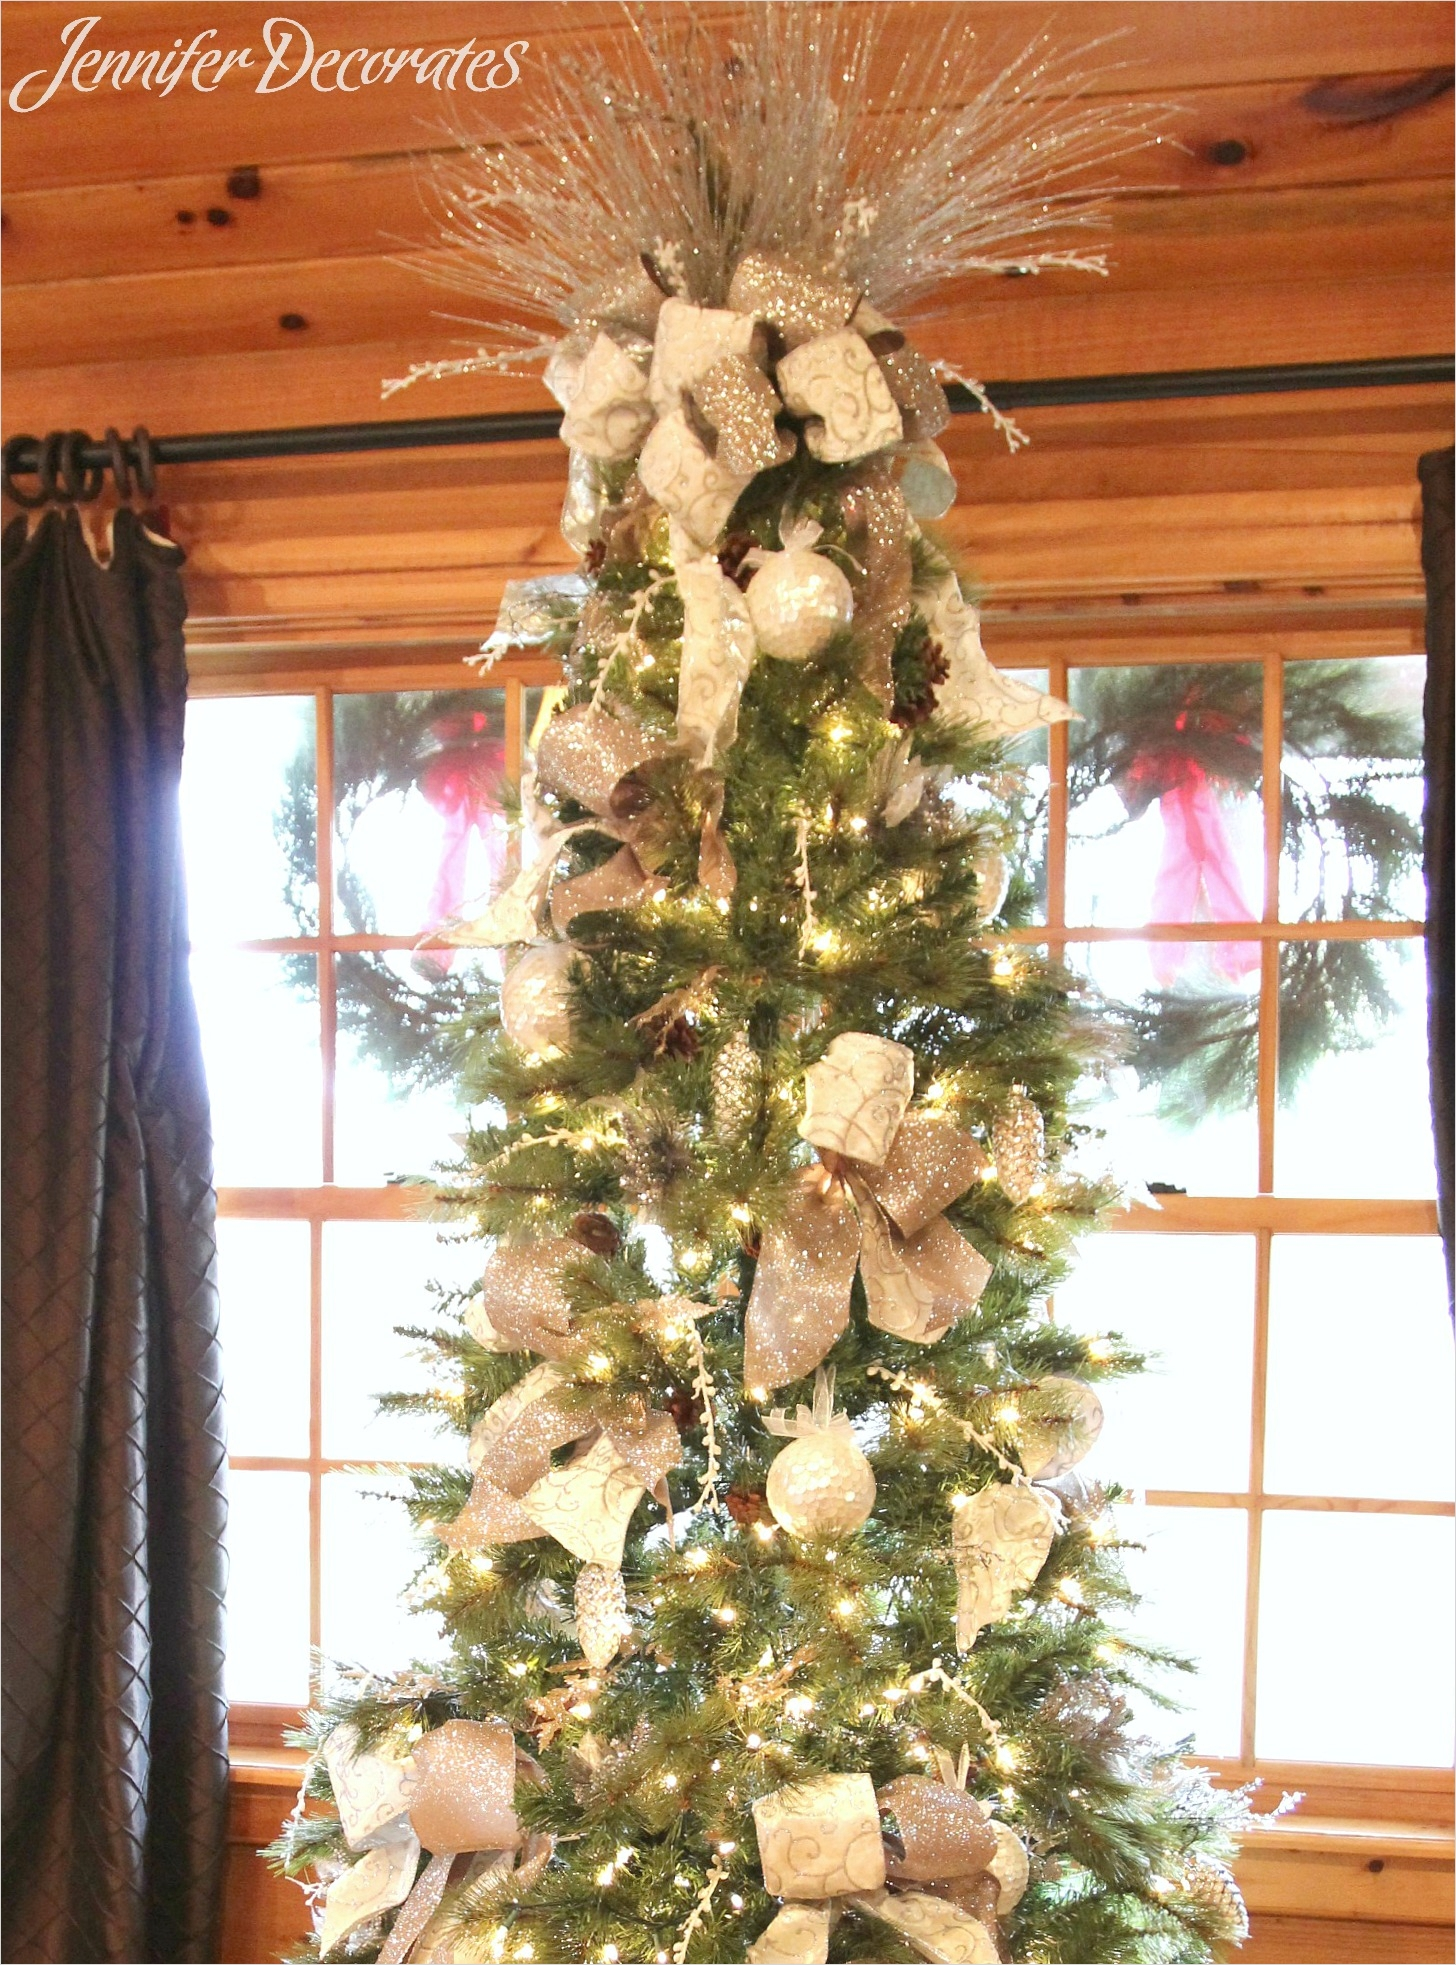 42 Stunning Country Christmas Centerpieces Ideas Ideas 87 Country Christmas Decorating Ideas Jennifer Decorates 2